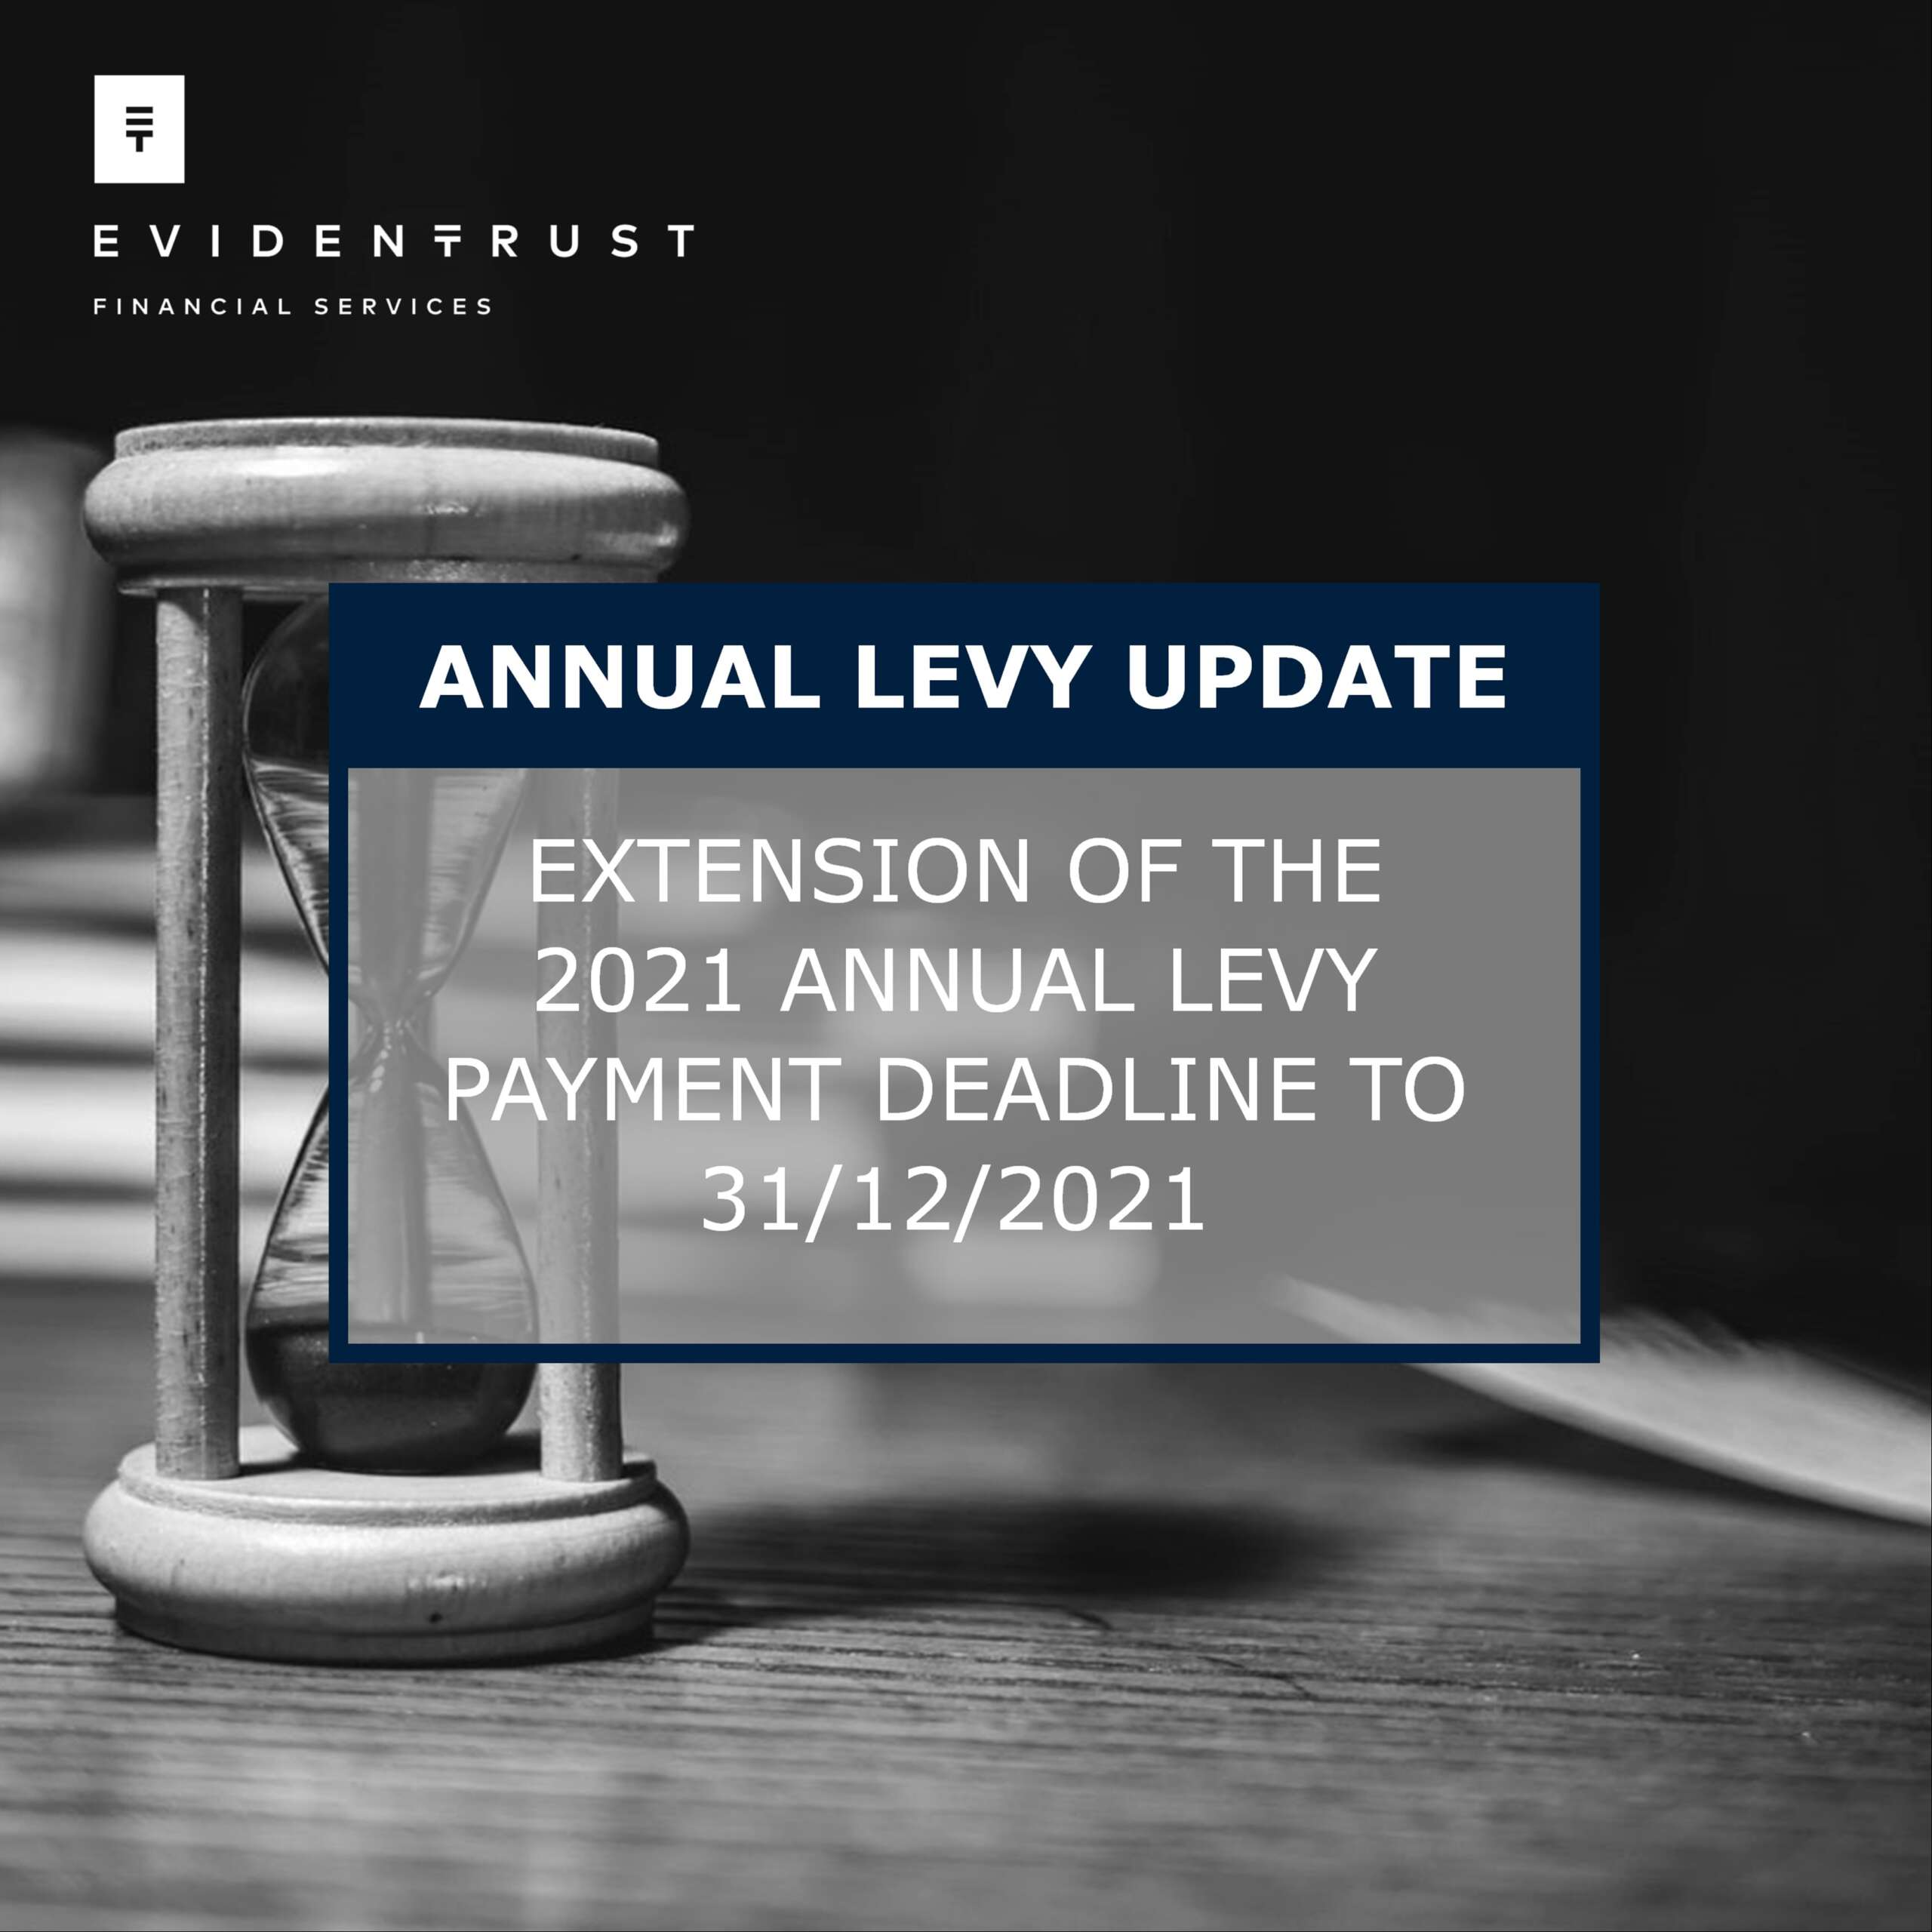 Extension of 2021 Annual Levy Deadline